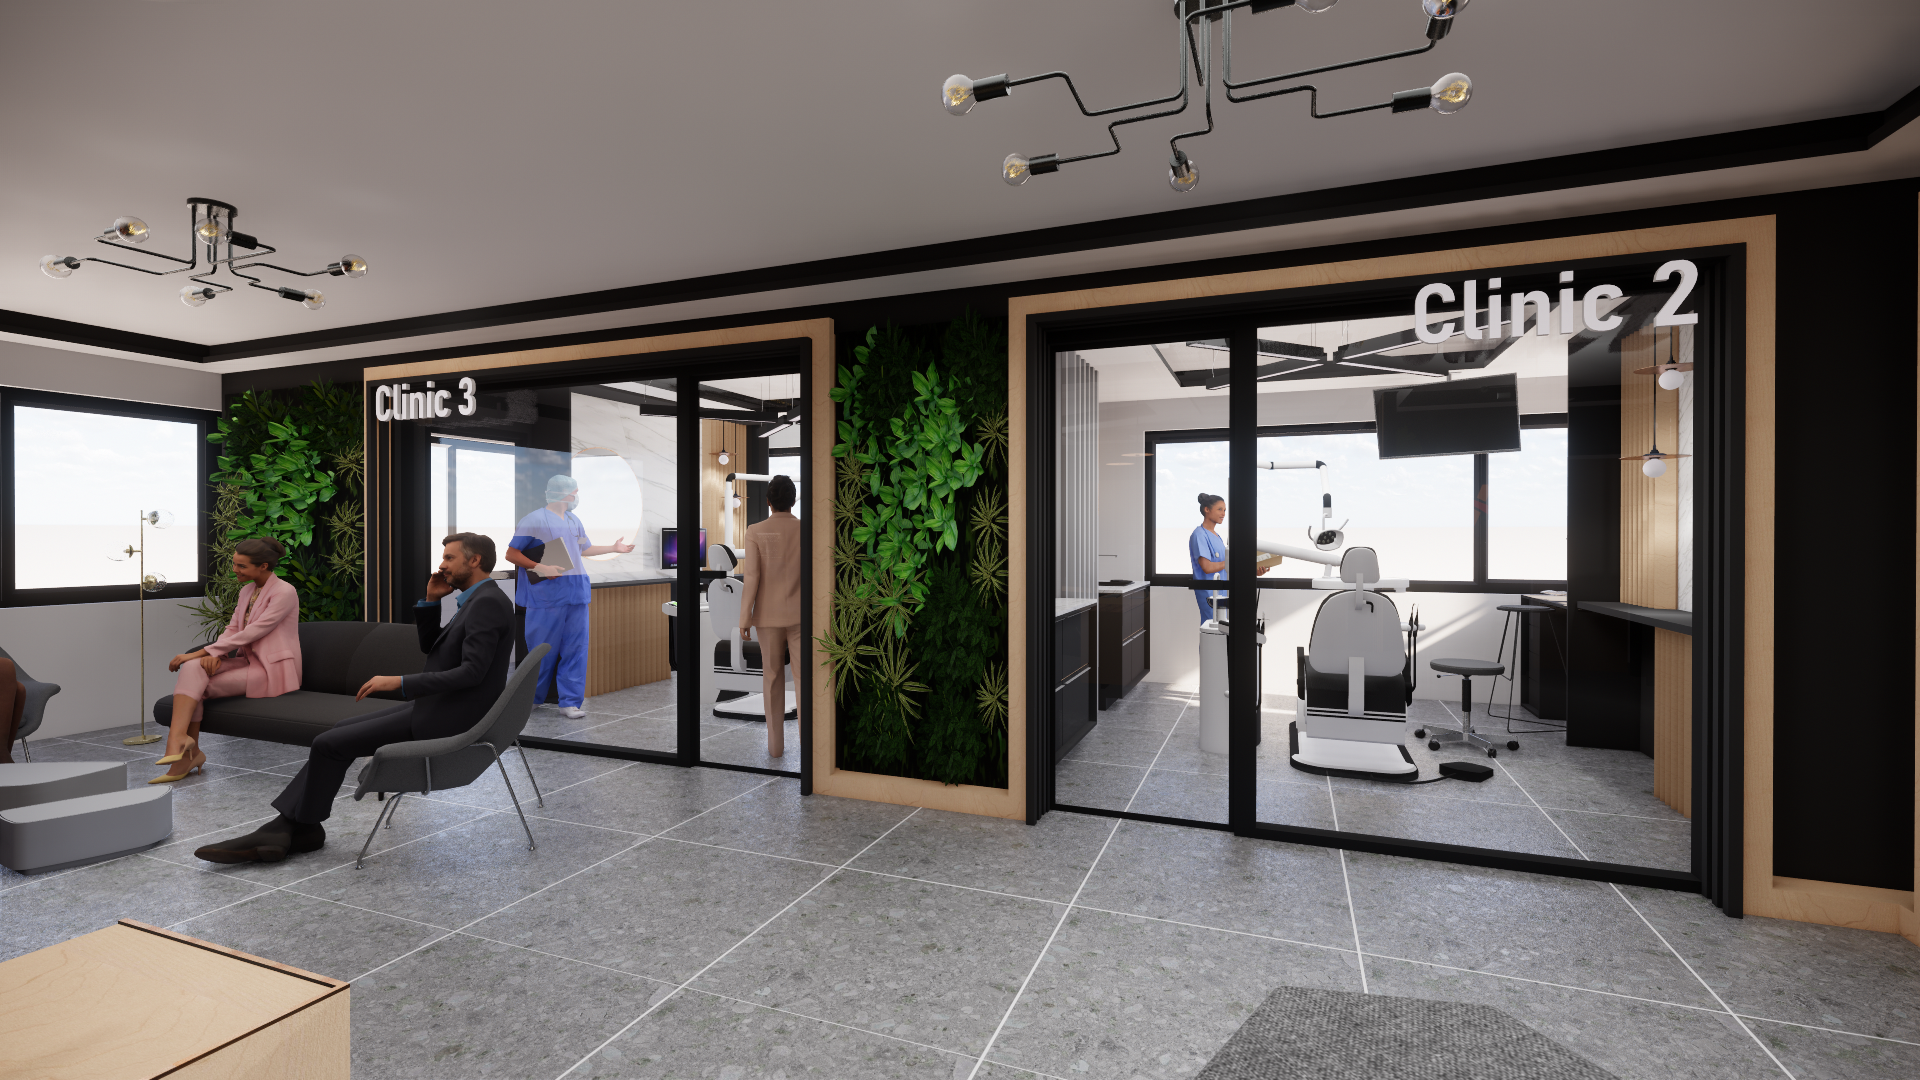 wdclinic_render_03.png